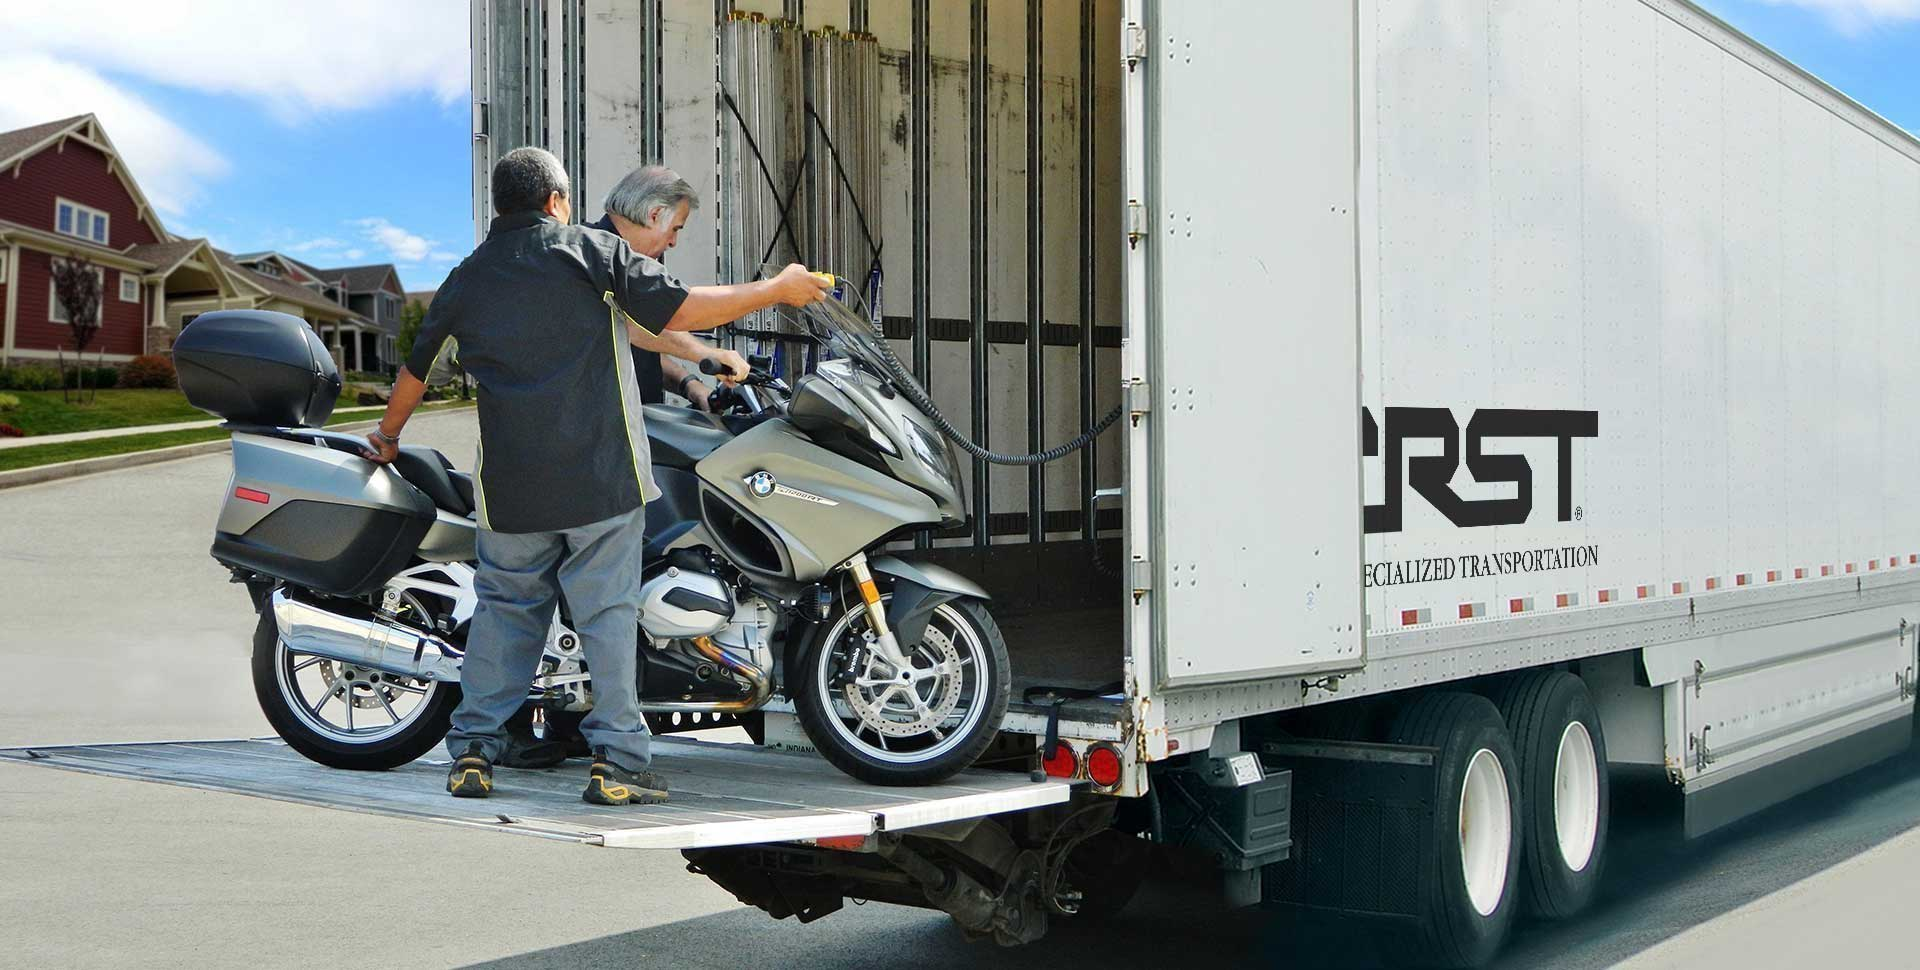 Shipping or Selling Your Vehicle